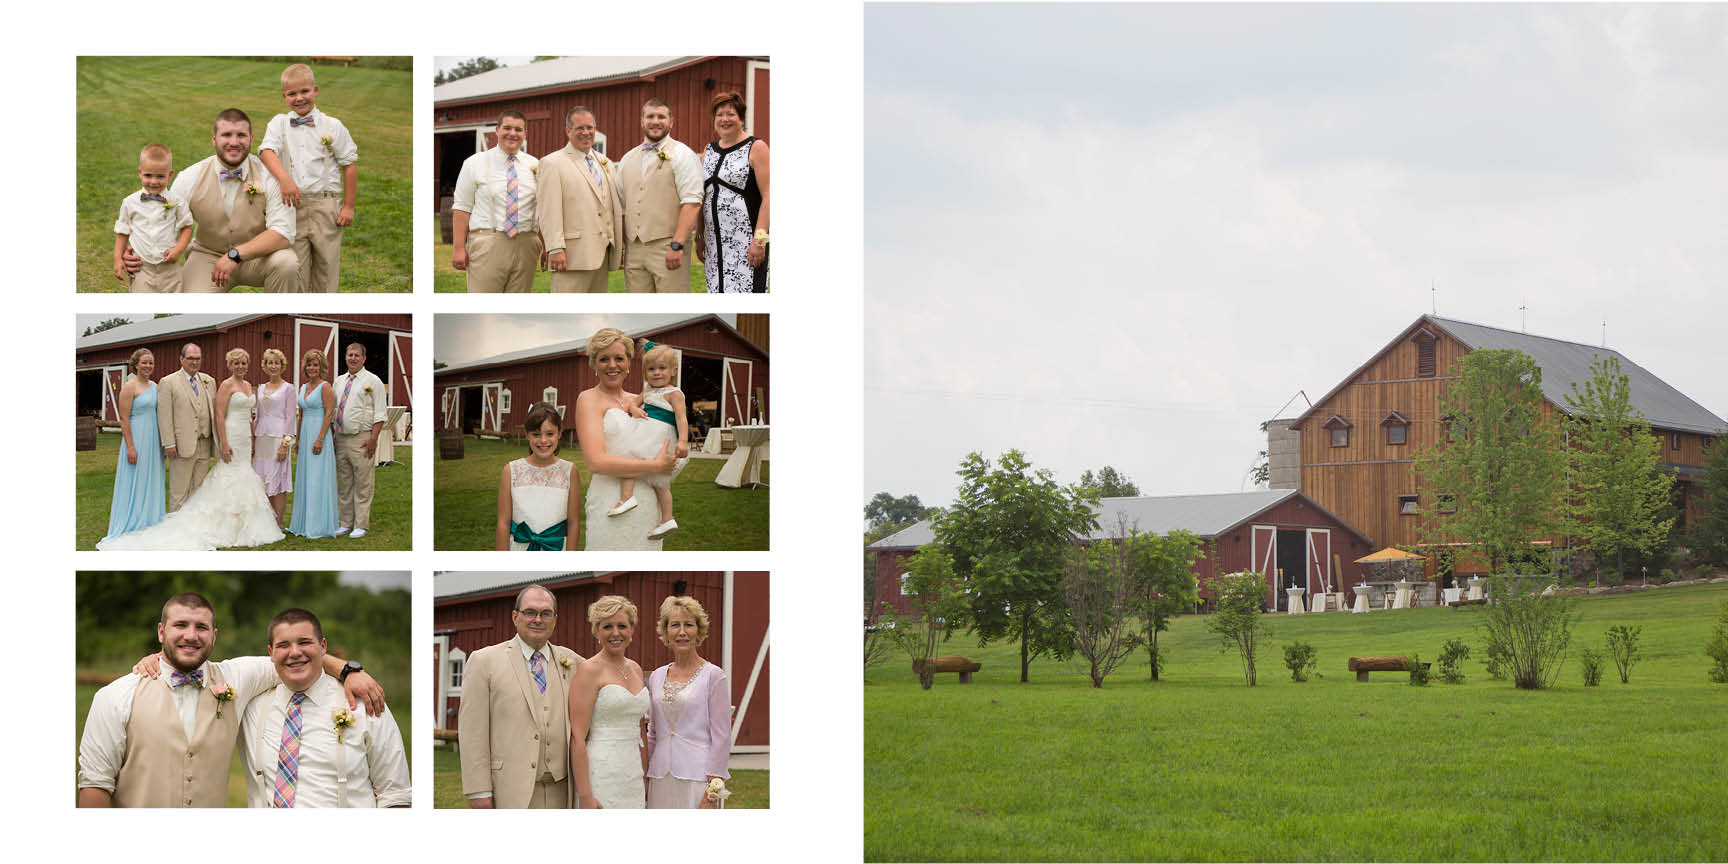 Ann Arbor wedding photographer, Natalie Mae captures the bride and grooms family.